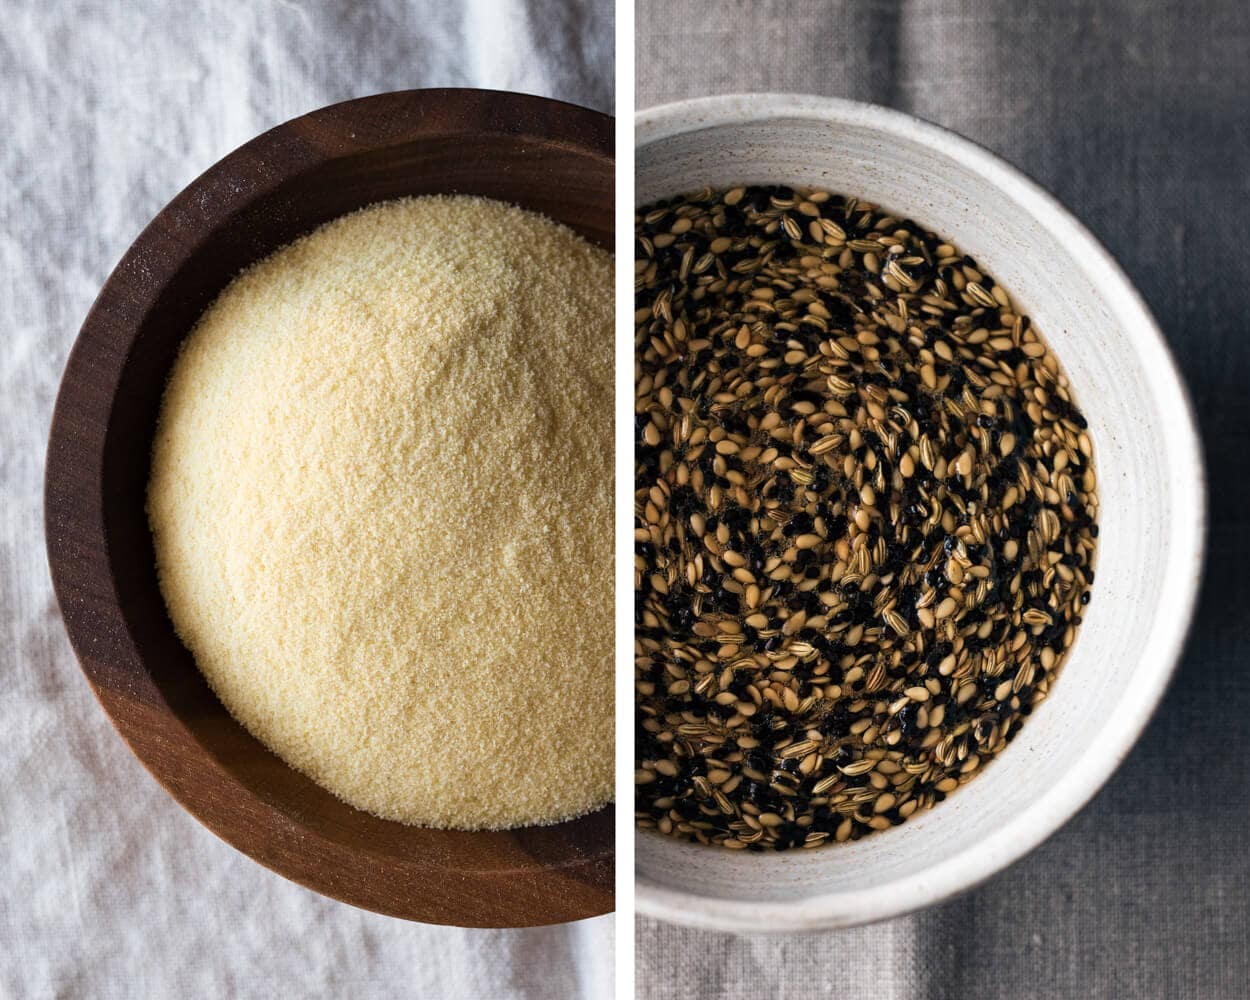 semolina and seed soaker